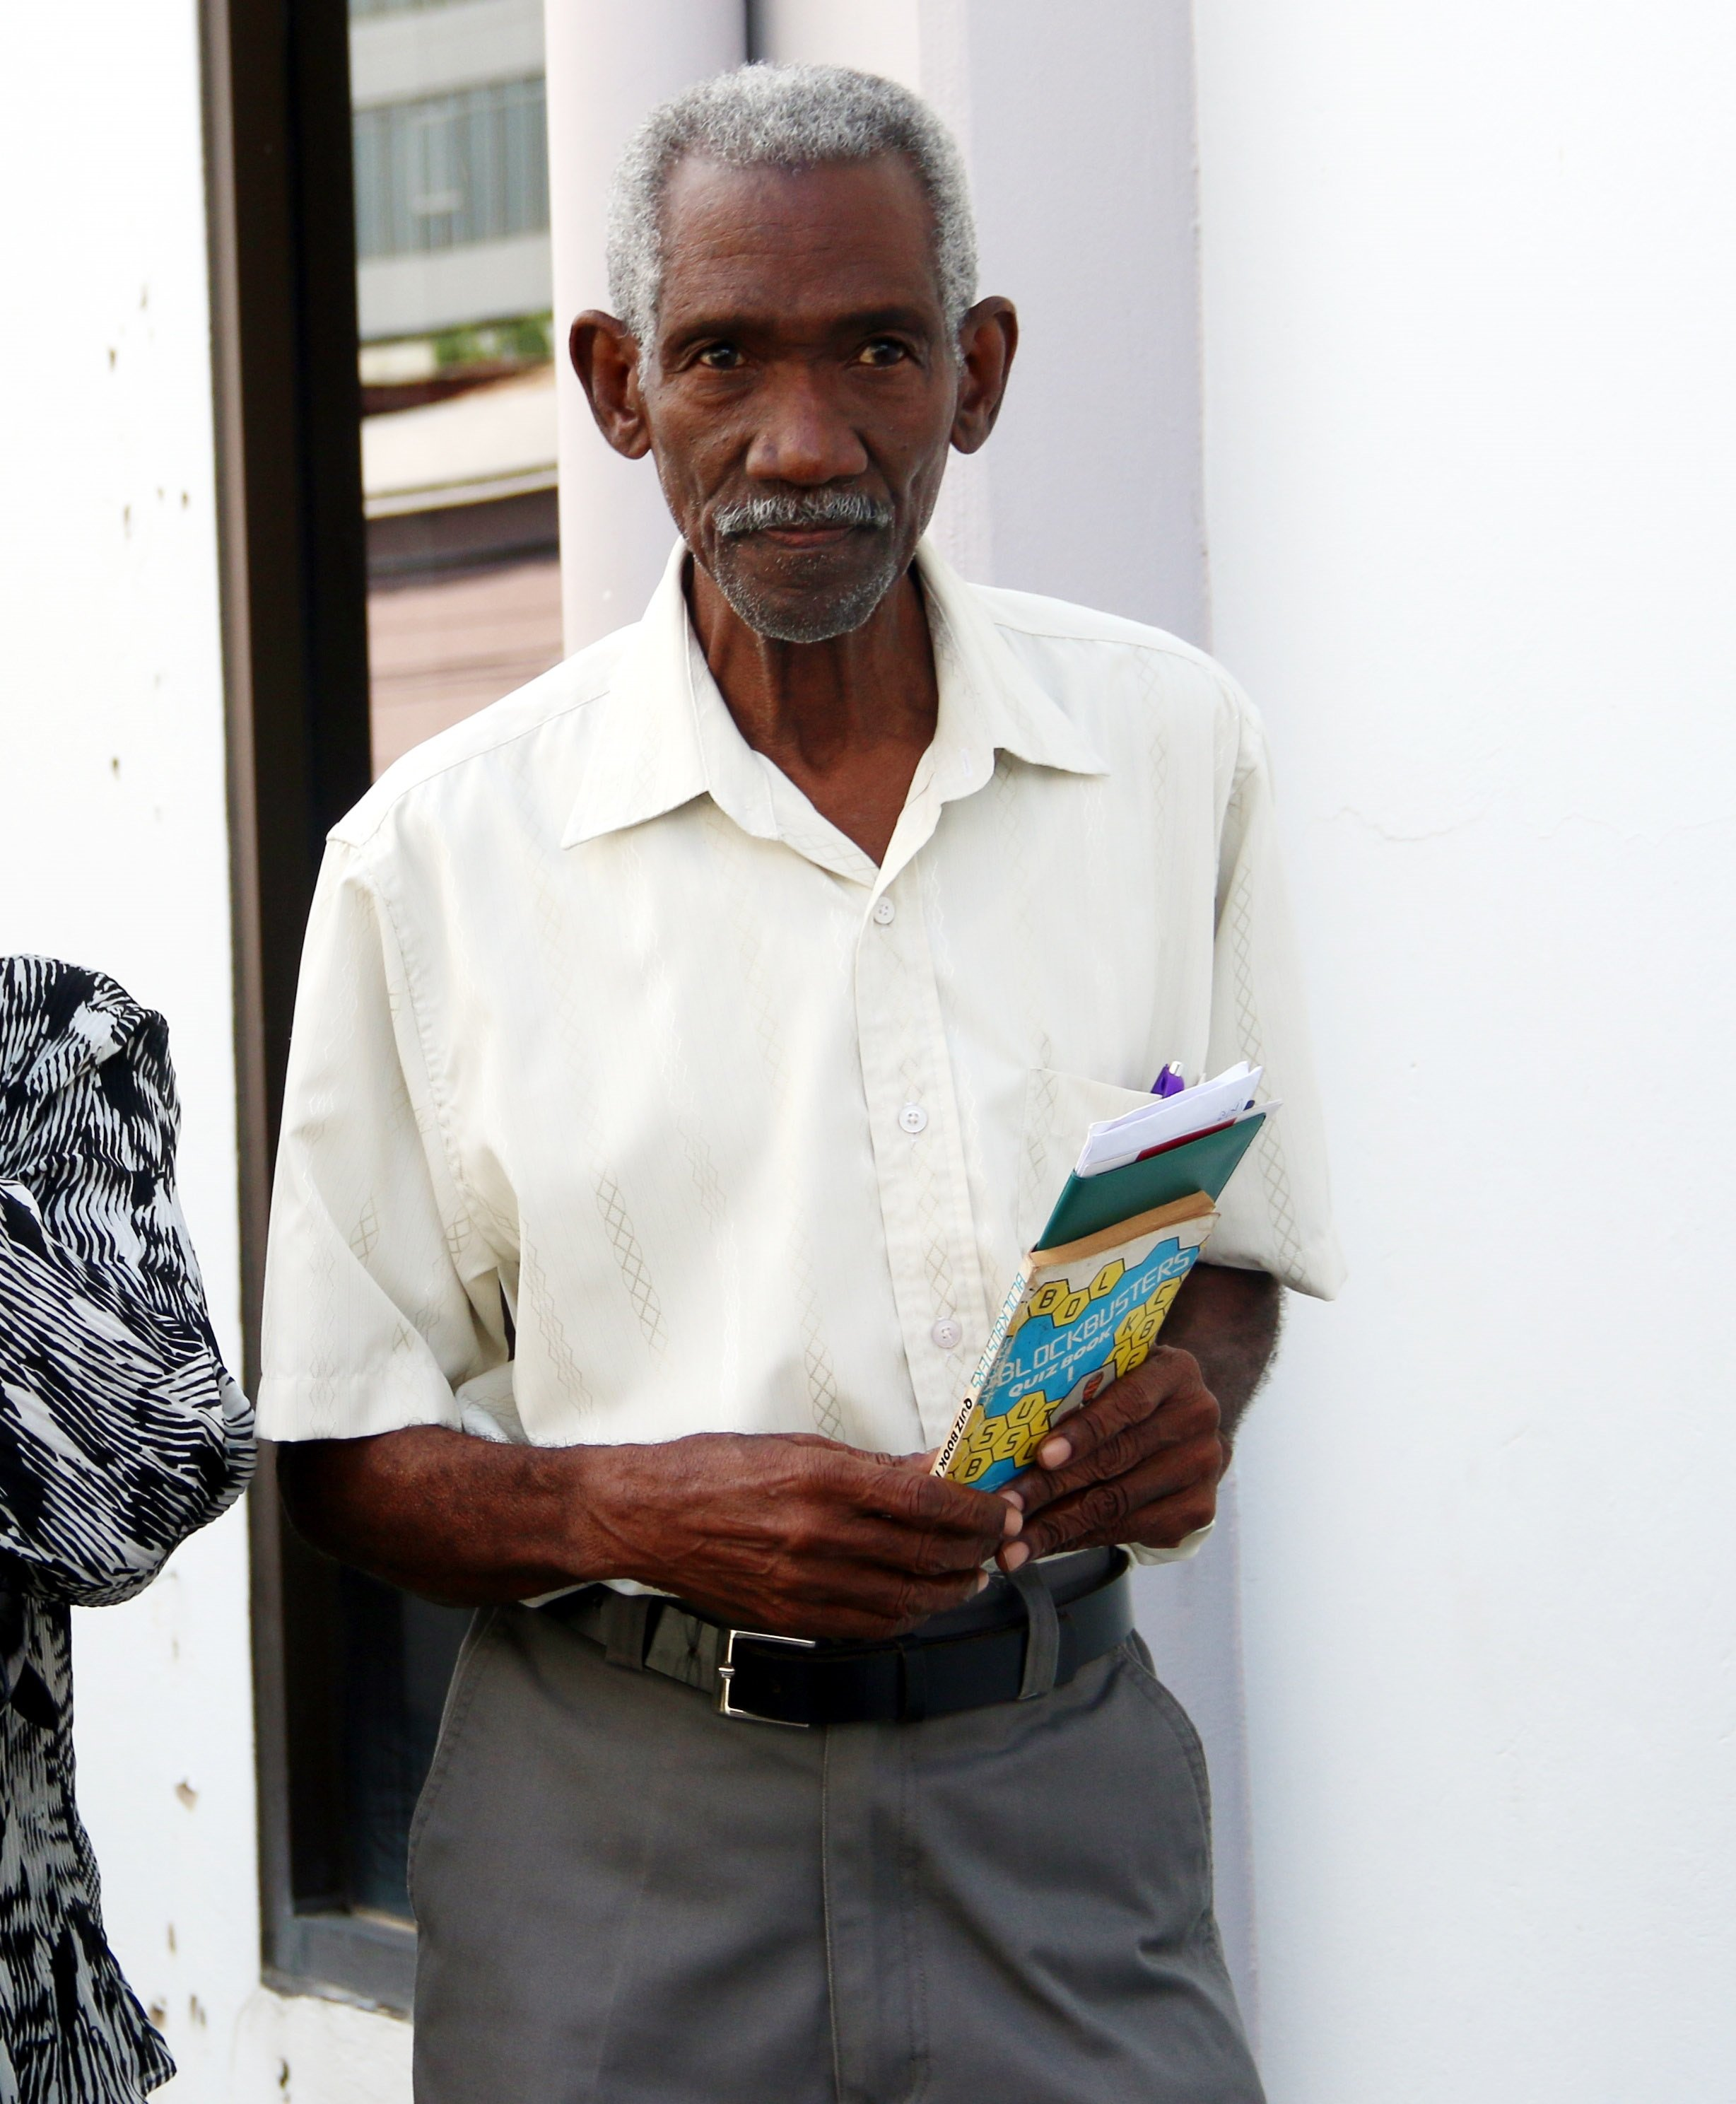 TESTIFIED: Carlton Cato, 84, one of three men who testified yesterday in the San Fernando Magistrates Court at the start of a PI into fraud charges against Vicky Boodram and her former husband Ravi Arjoonsingh. PHOTO BY ANSEL JEBODH